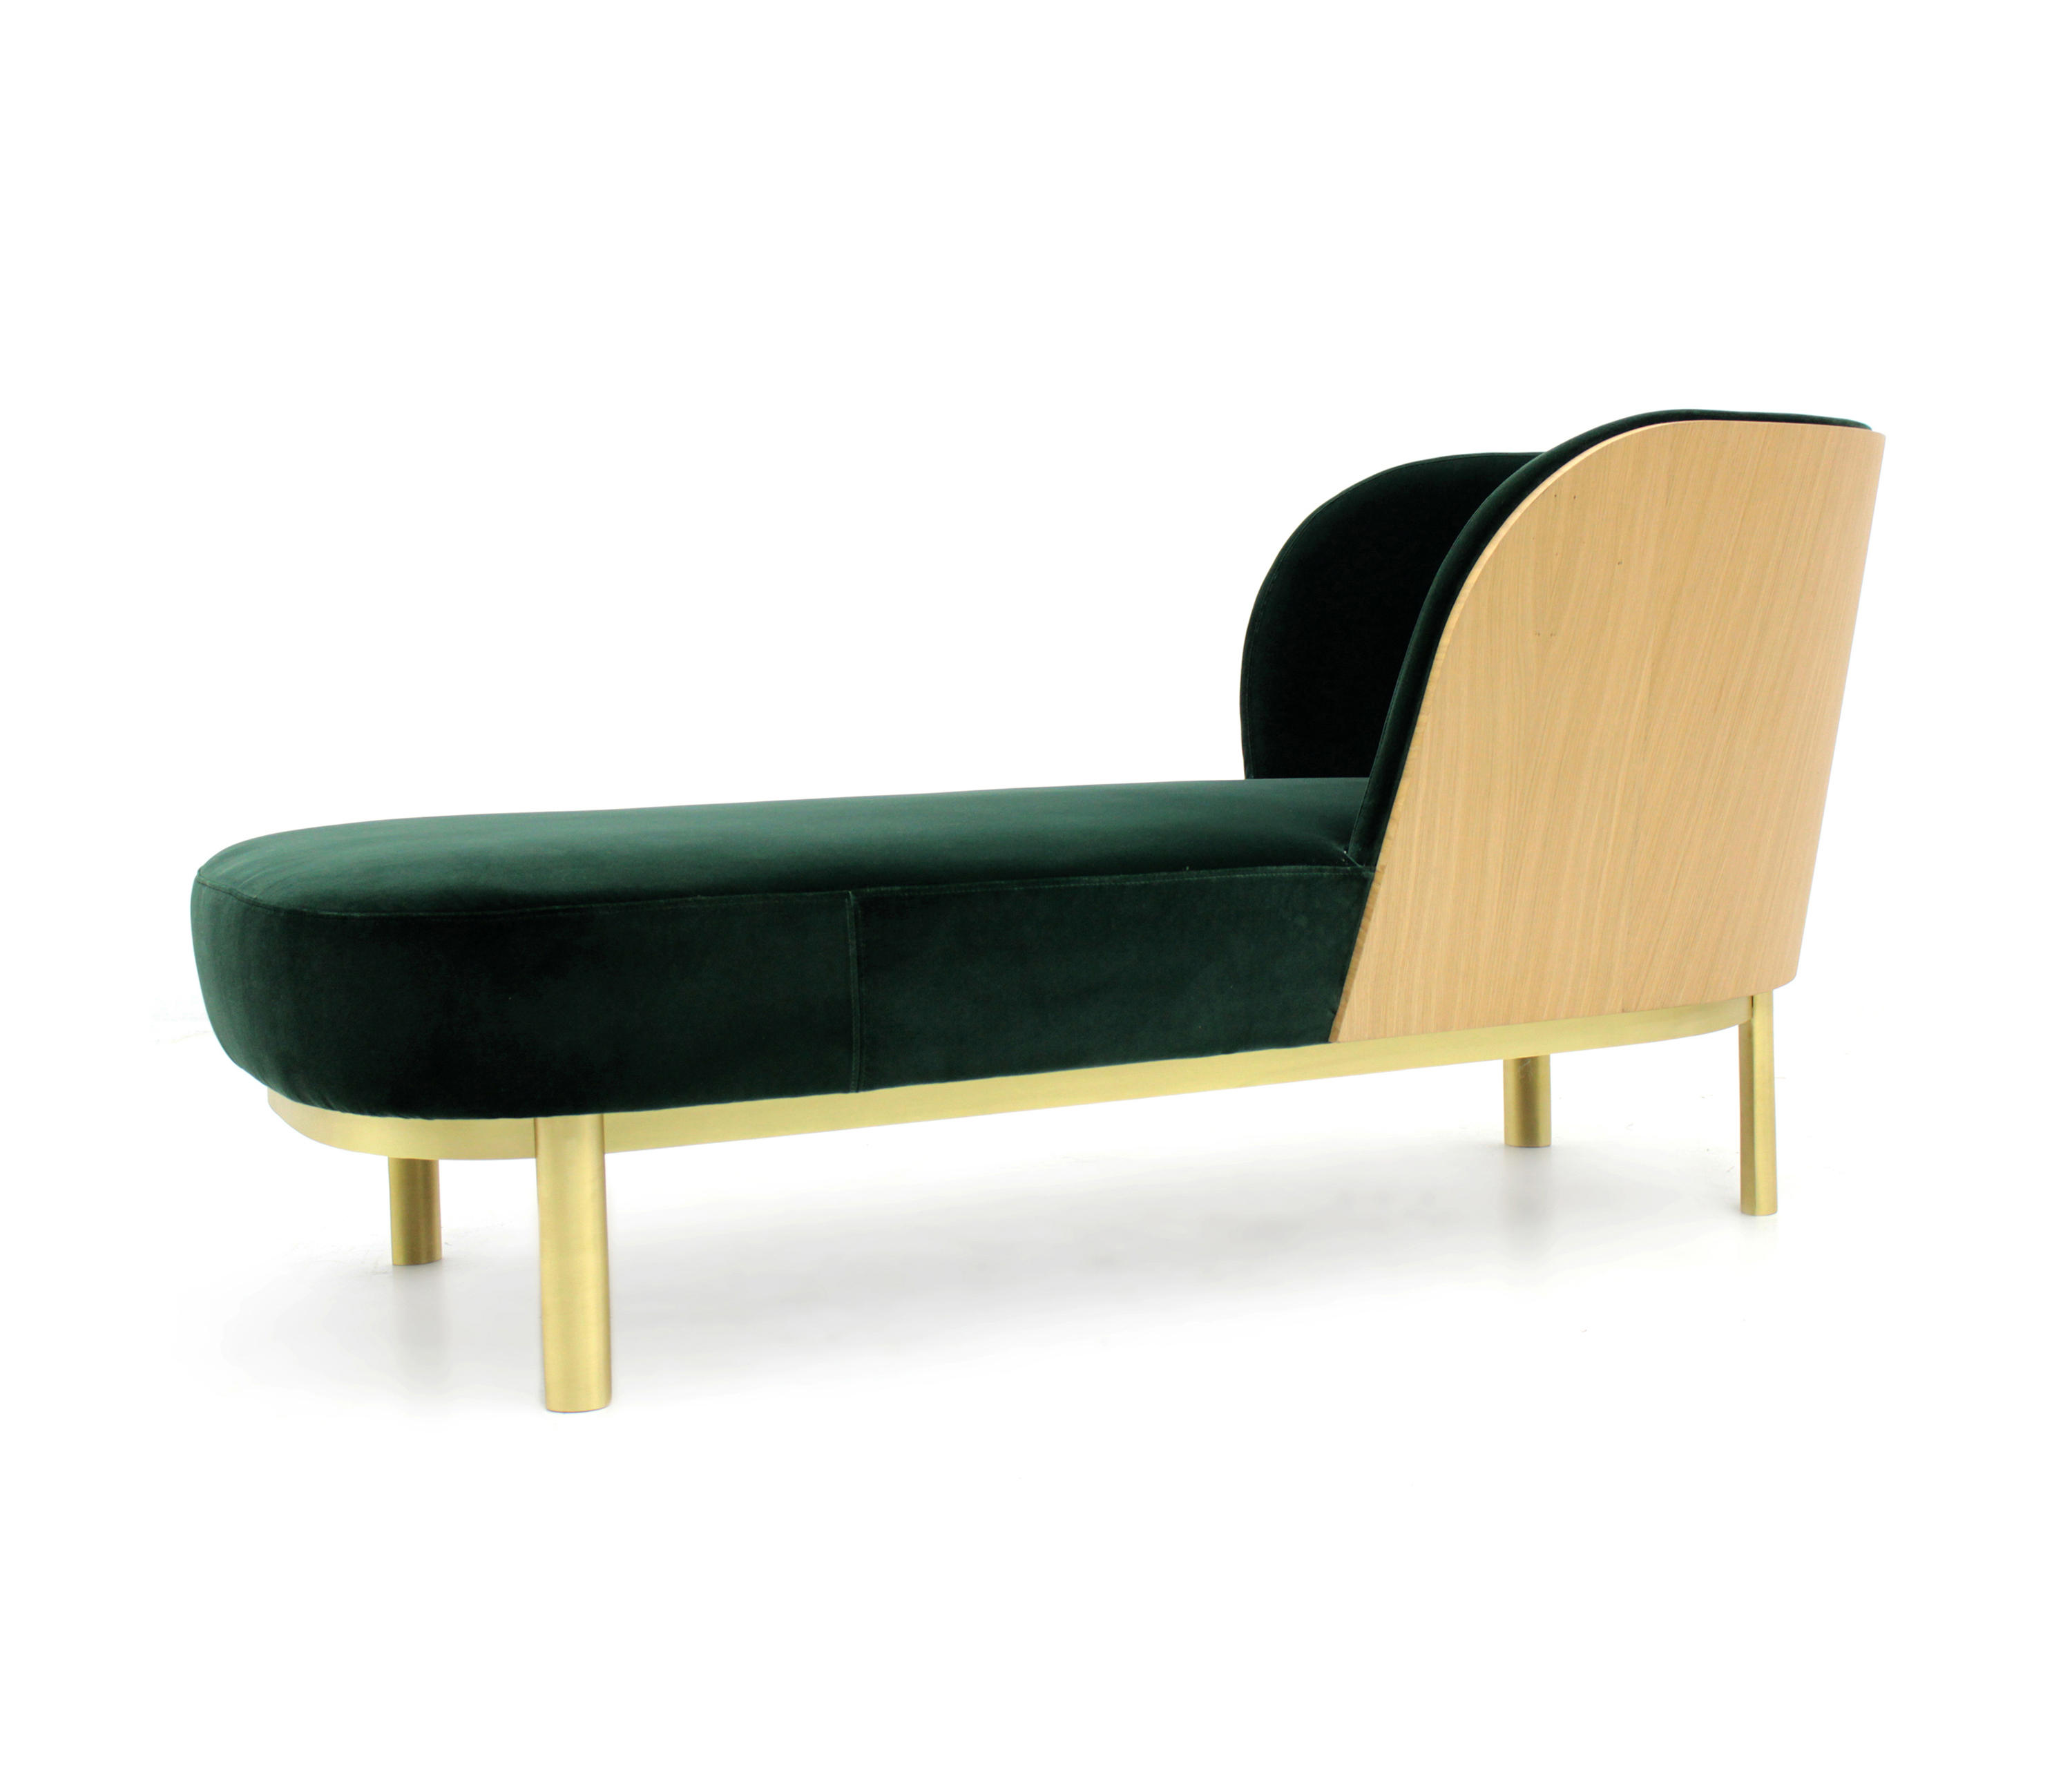 Serene chaise longue chaise longues from paulo antunes for Chaise longue de couleur